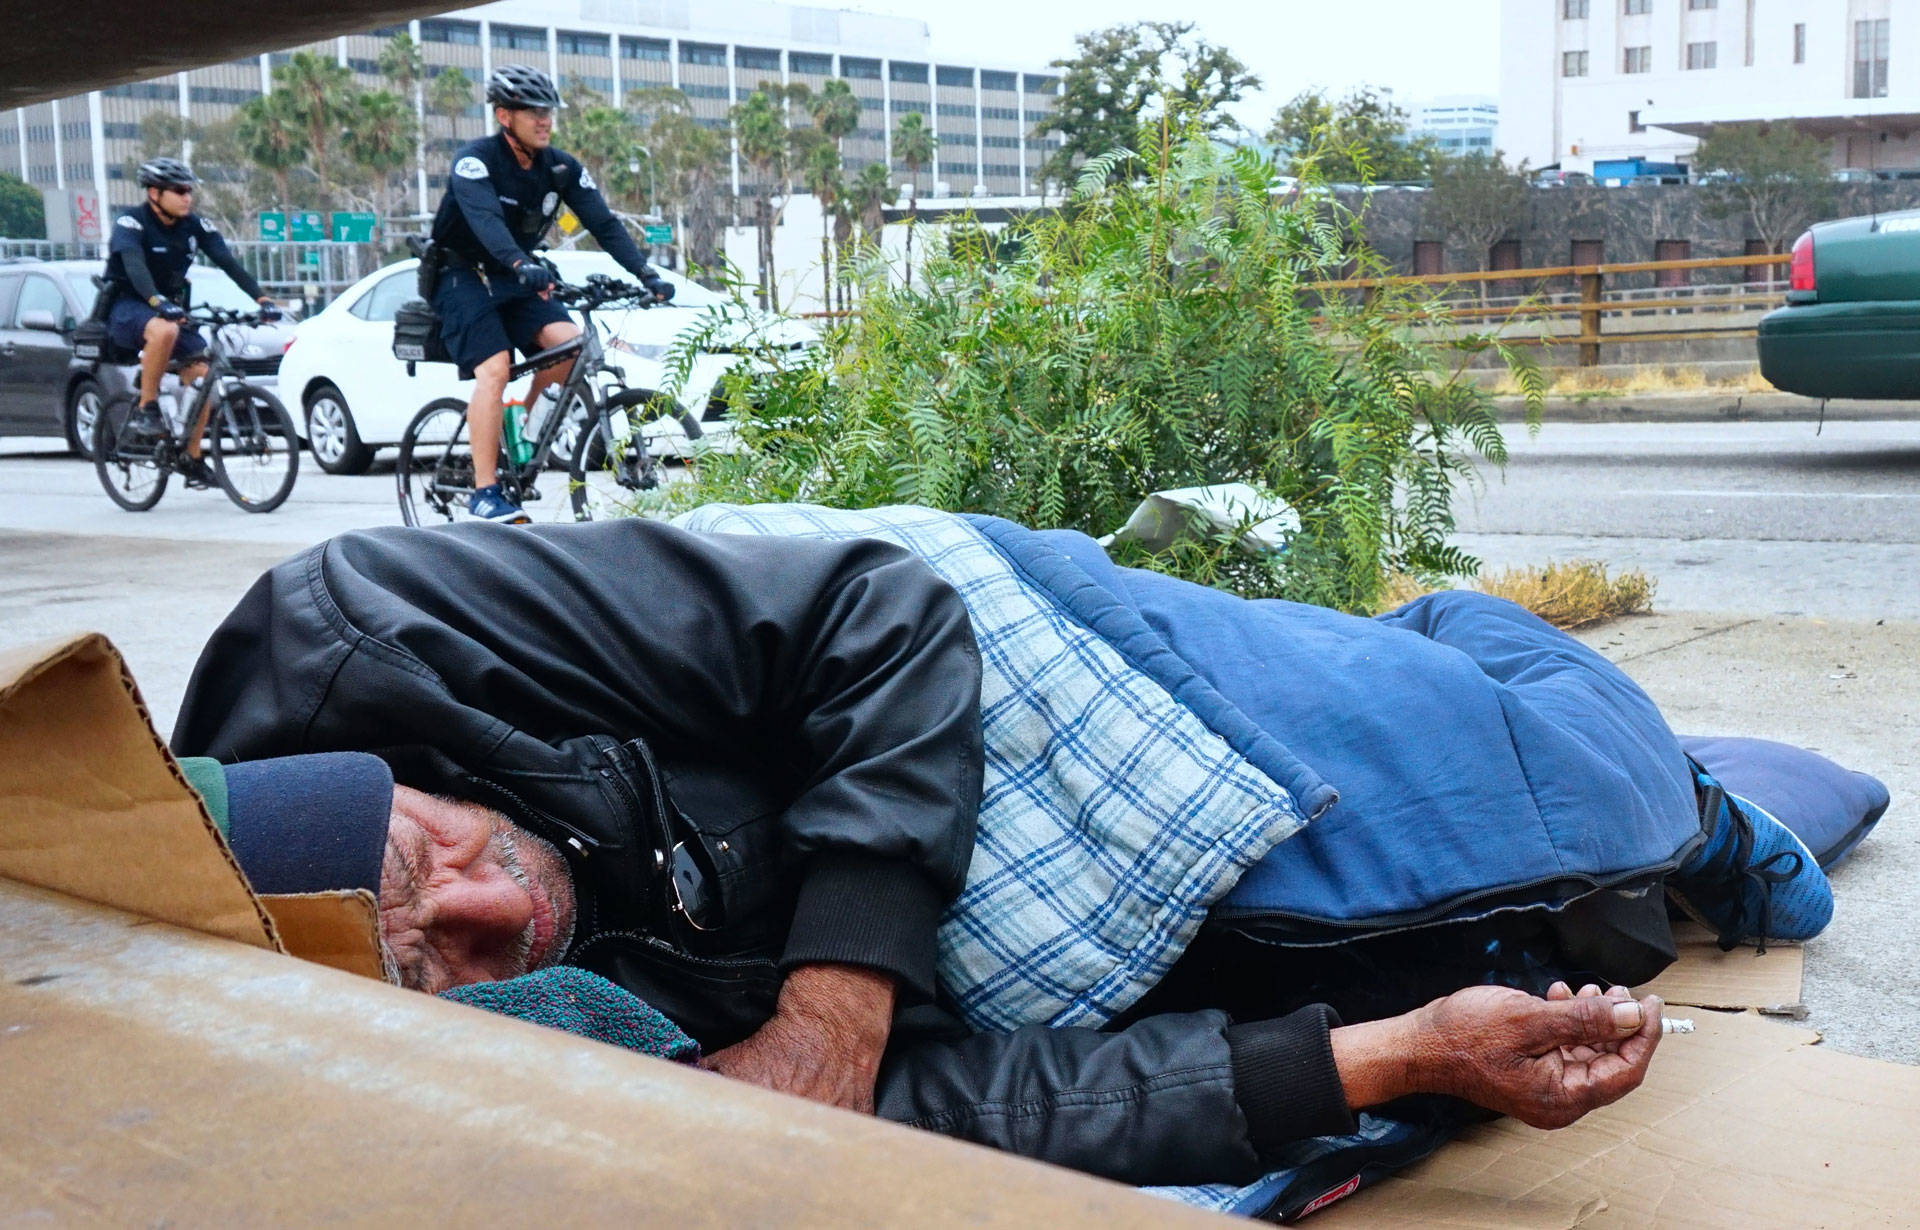 A homeless man sleeps at his encampment on a downtown sidewalk in Los Angeles. Frederic J. Brown/Getty Images